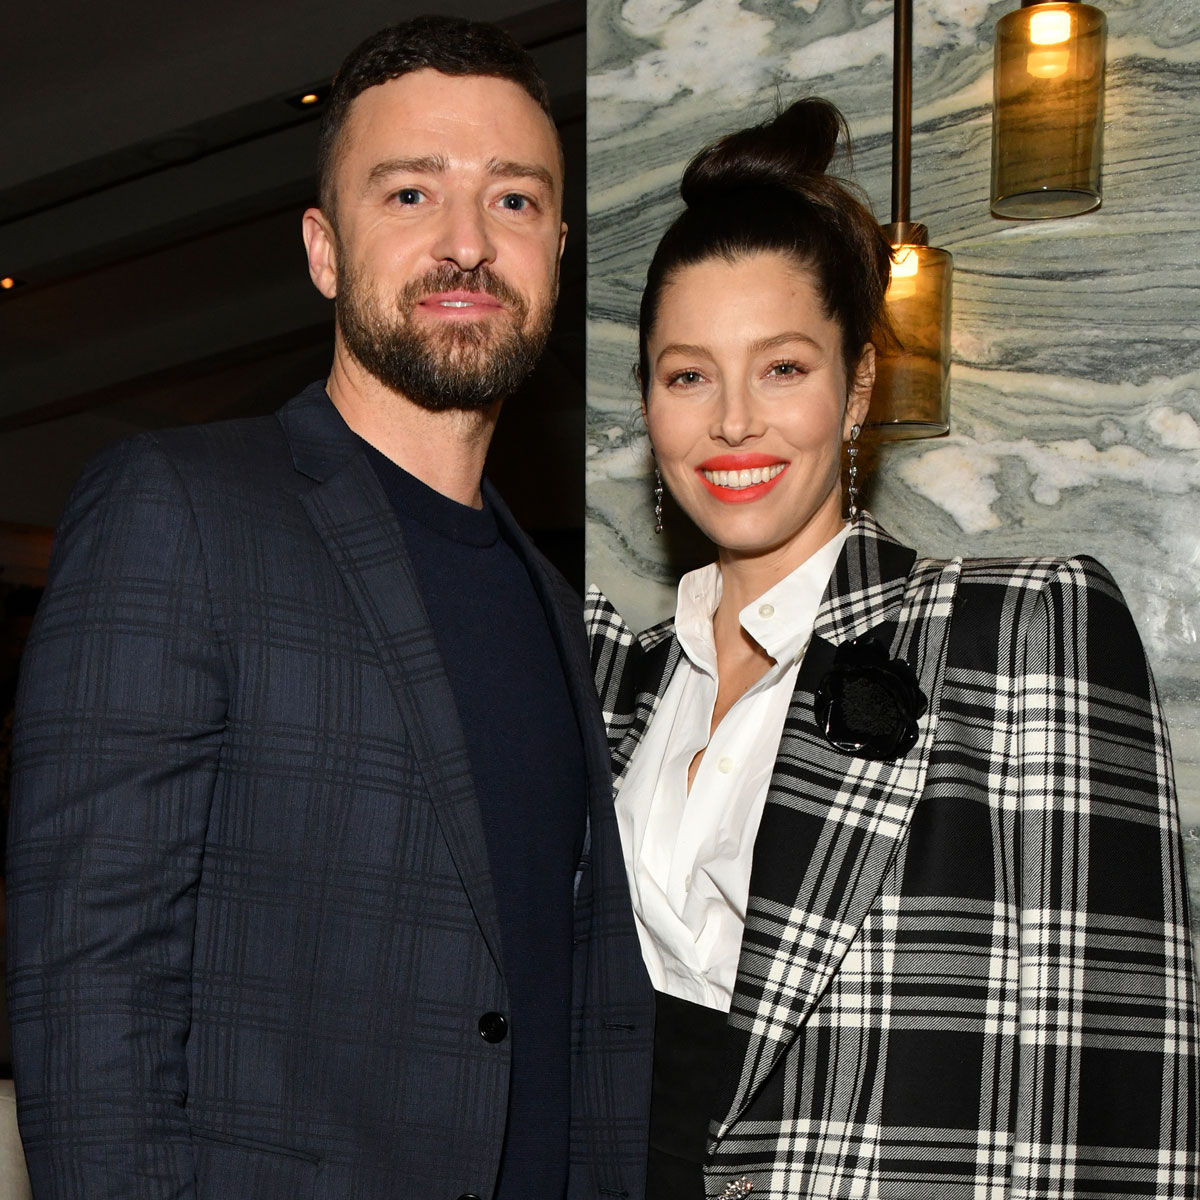 Jessica Biel Shares Rare Glimpse Into Her Family Life With Justin Timberlake